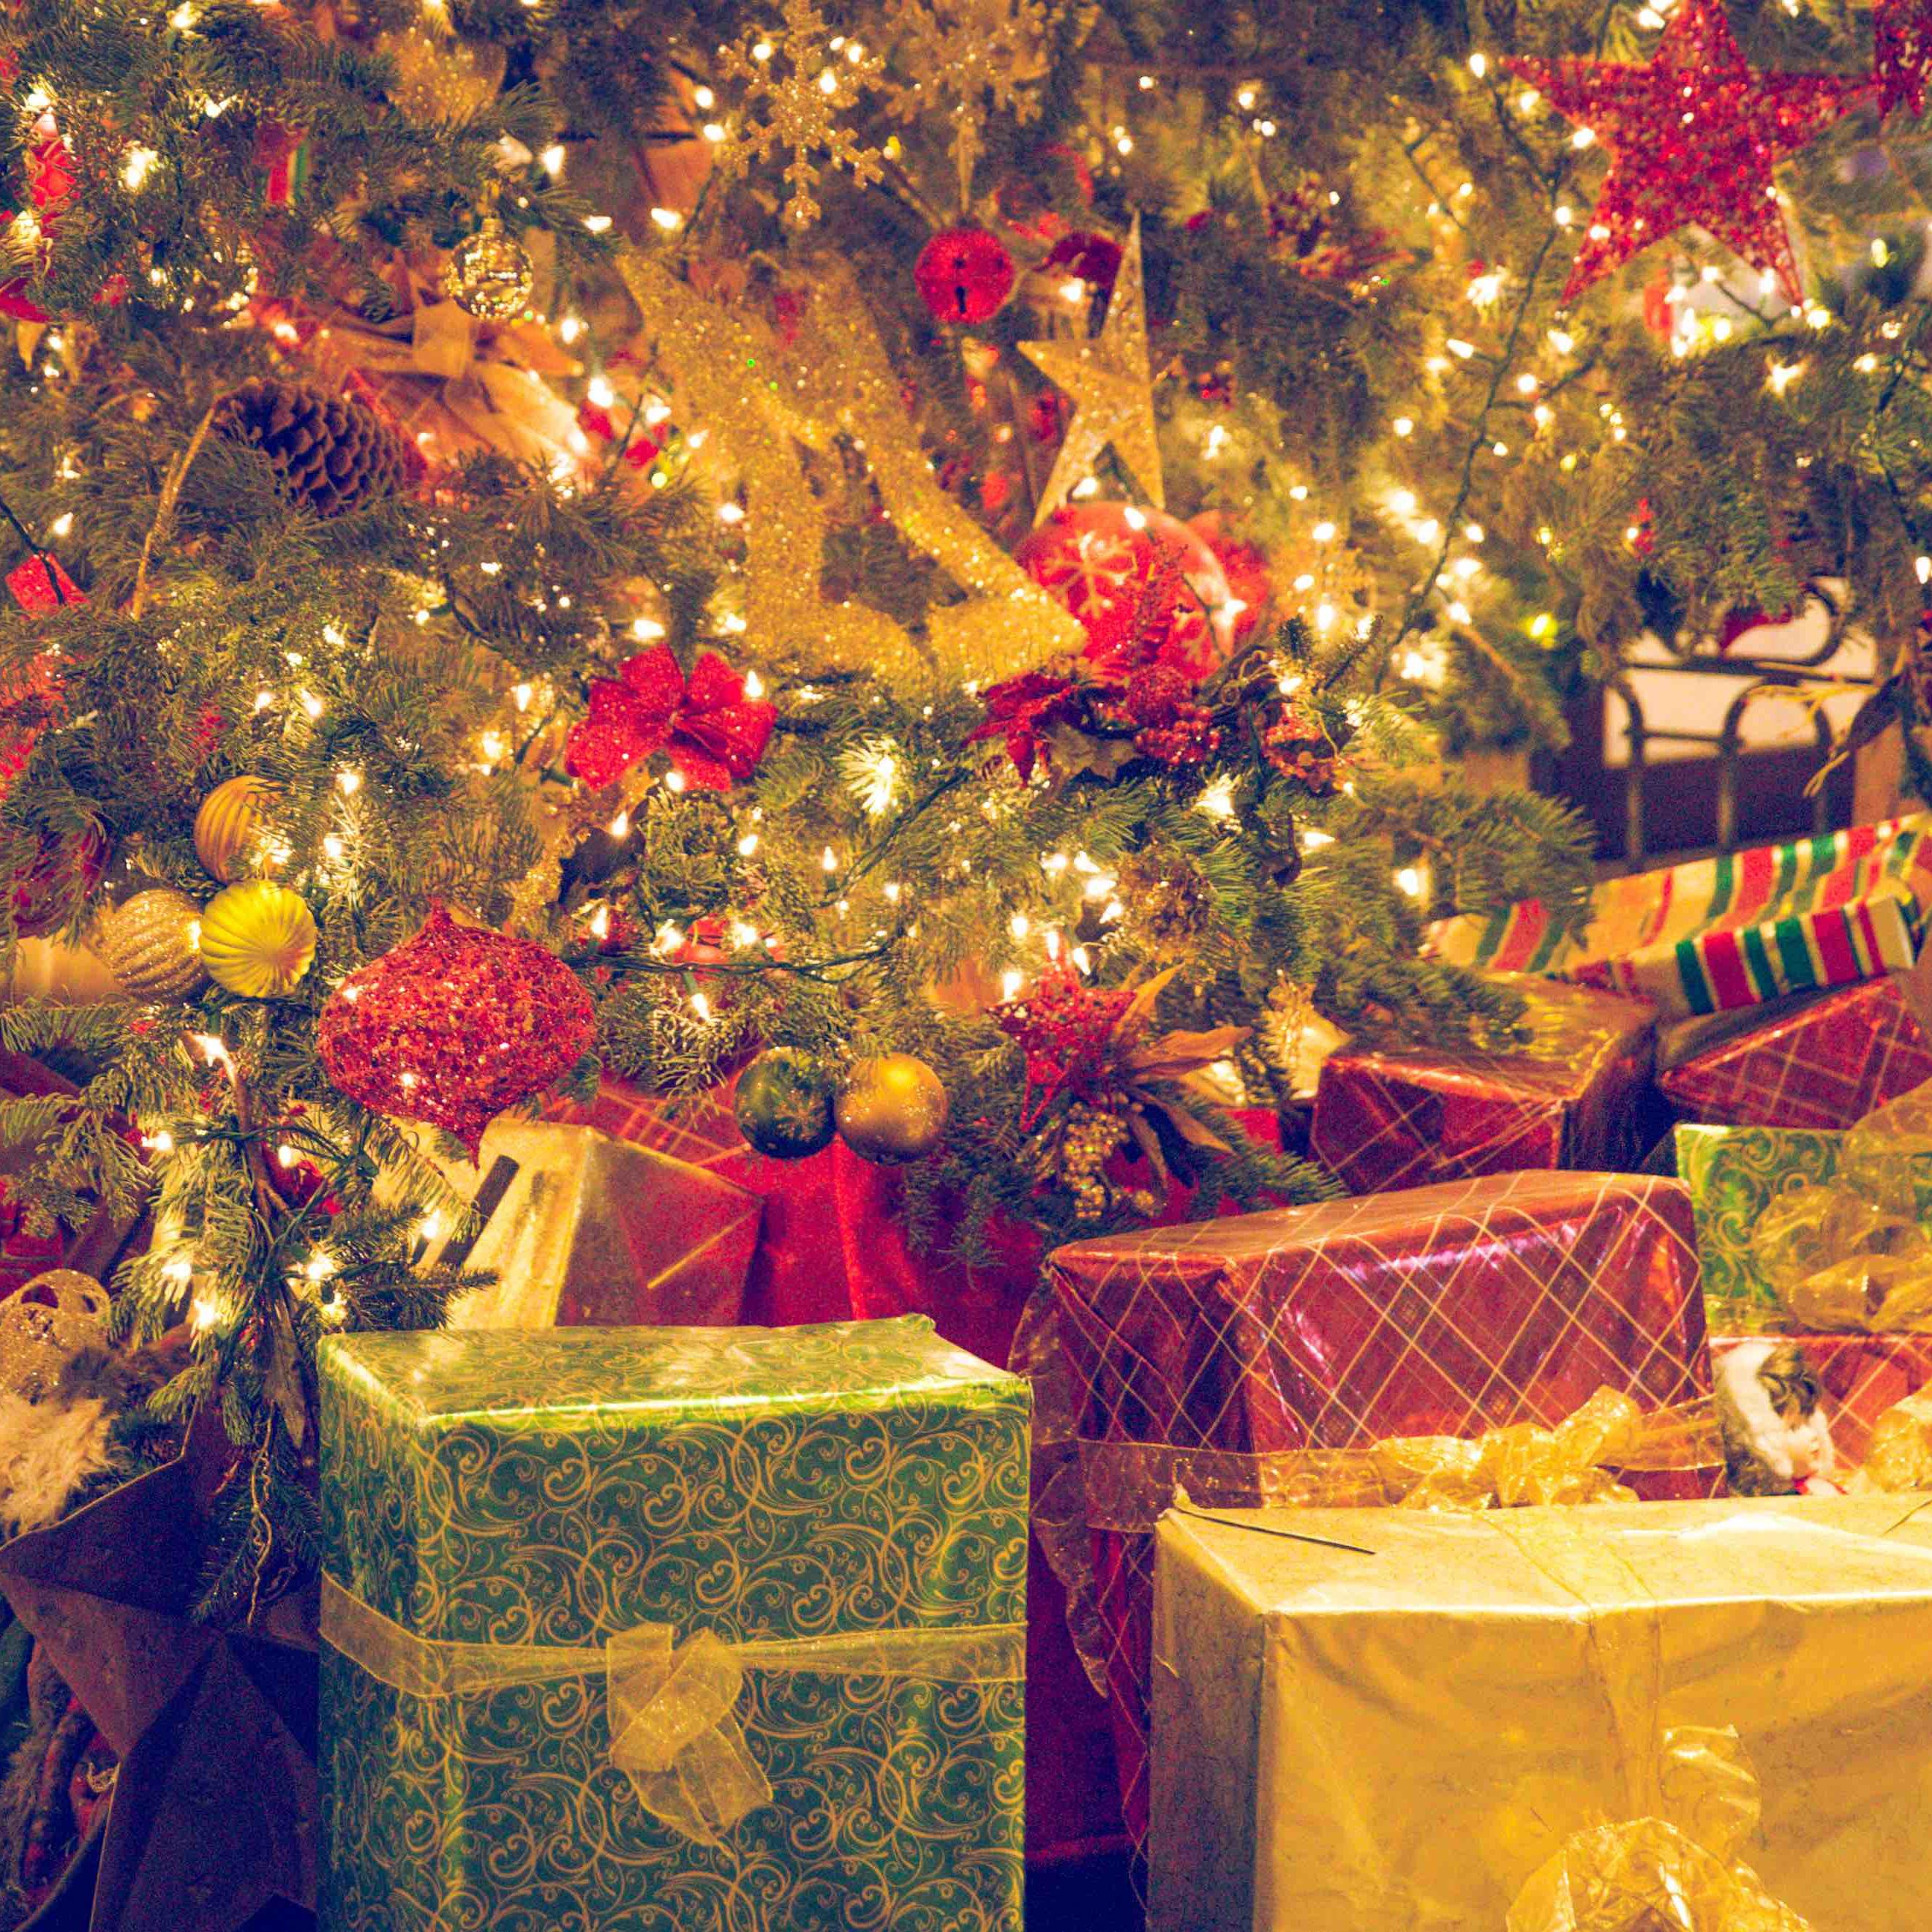 christmas present under a tree